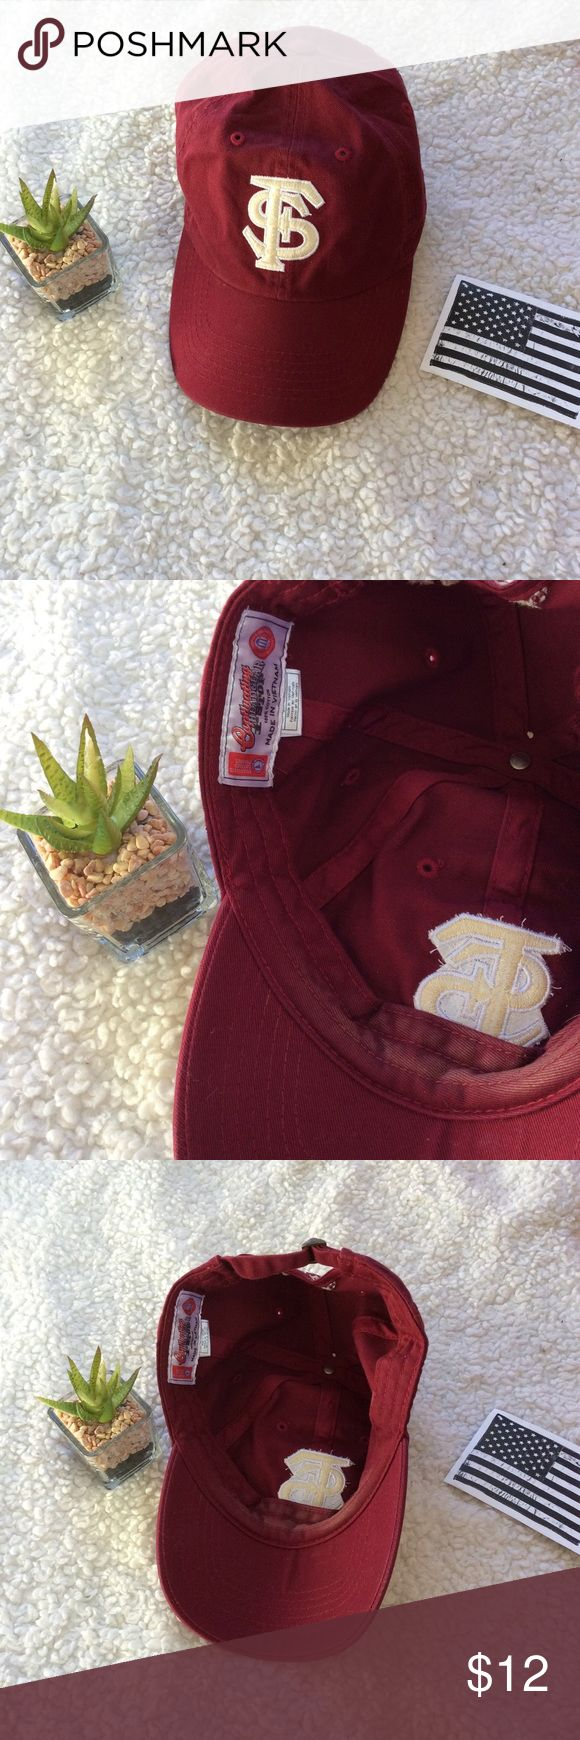 FSU Baseball Cap Garnet and Gold FSU Baseball Hat✨ Adjustable strap to fit most adults! Cheer on the noles with this hat (or hide any bad hair day!) ❤️💛 Accessories Hats